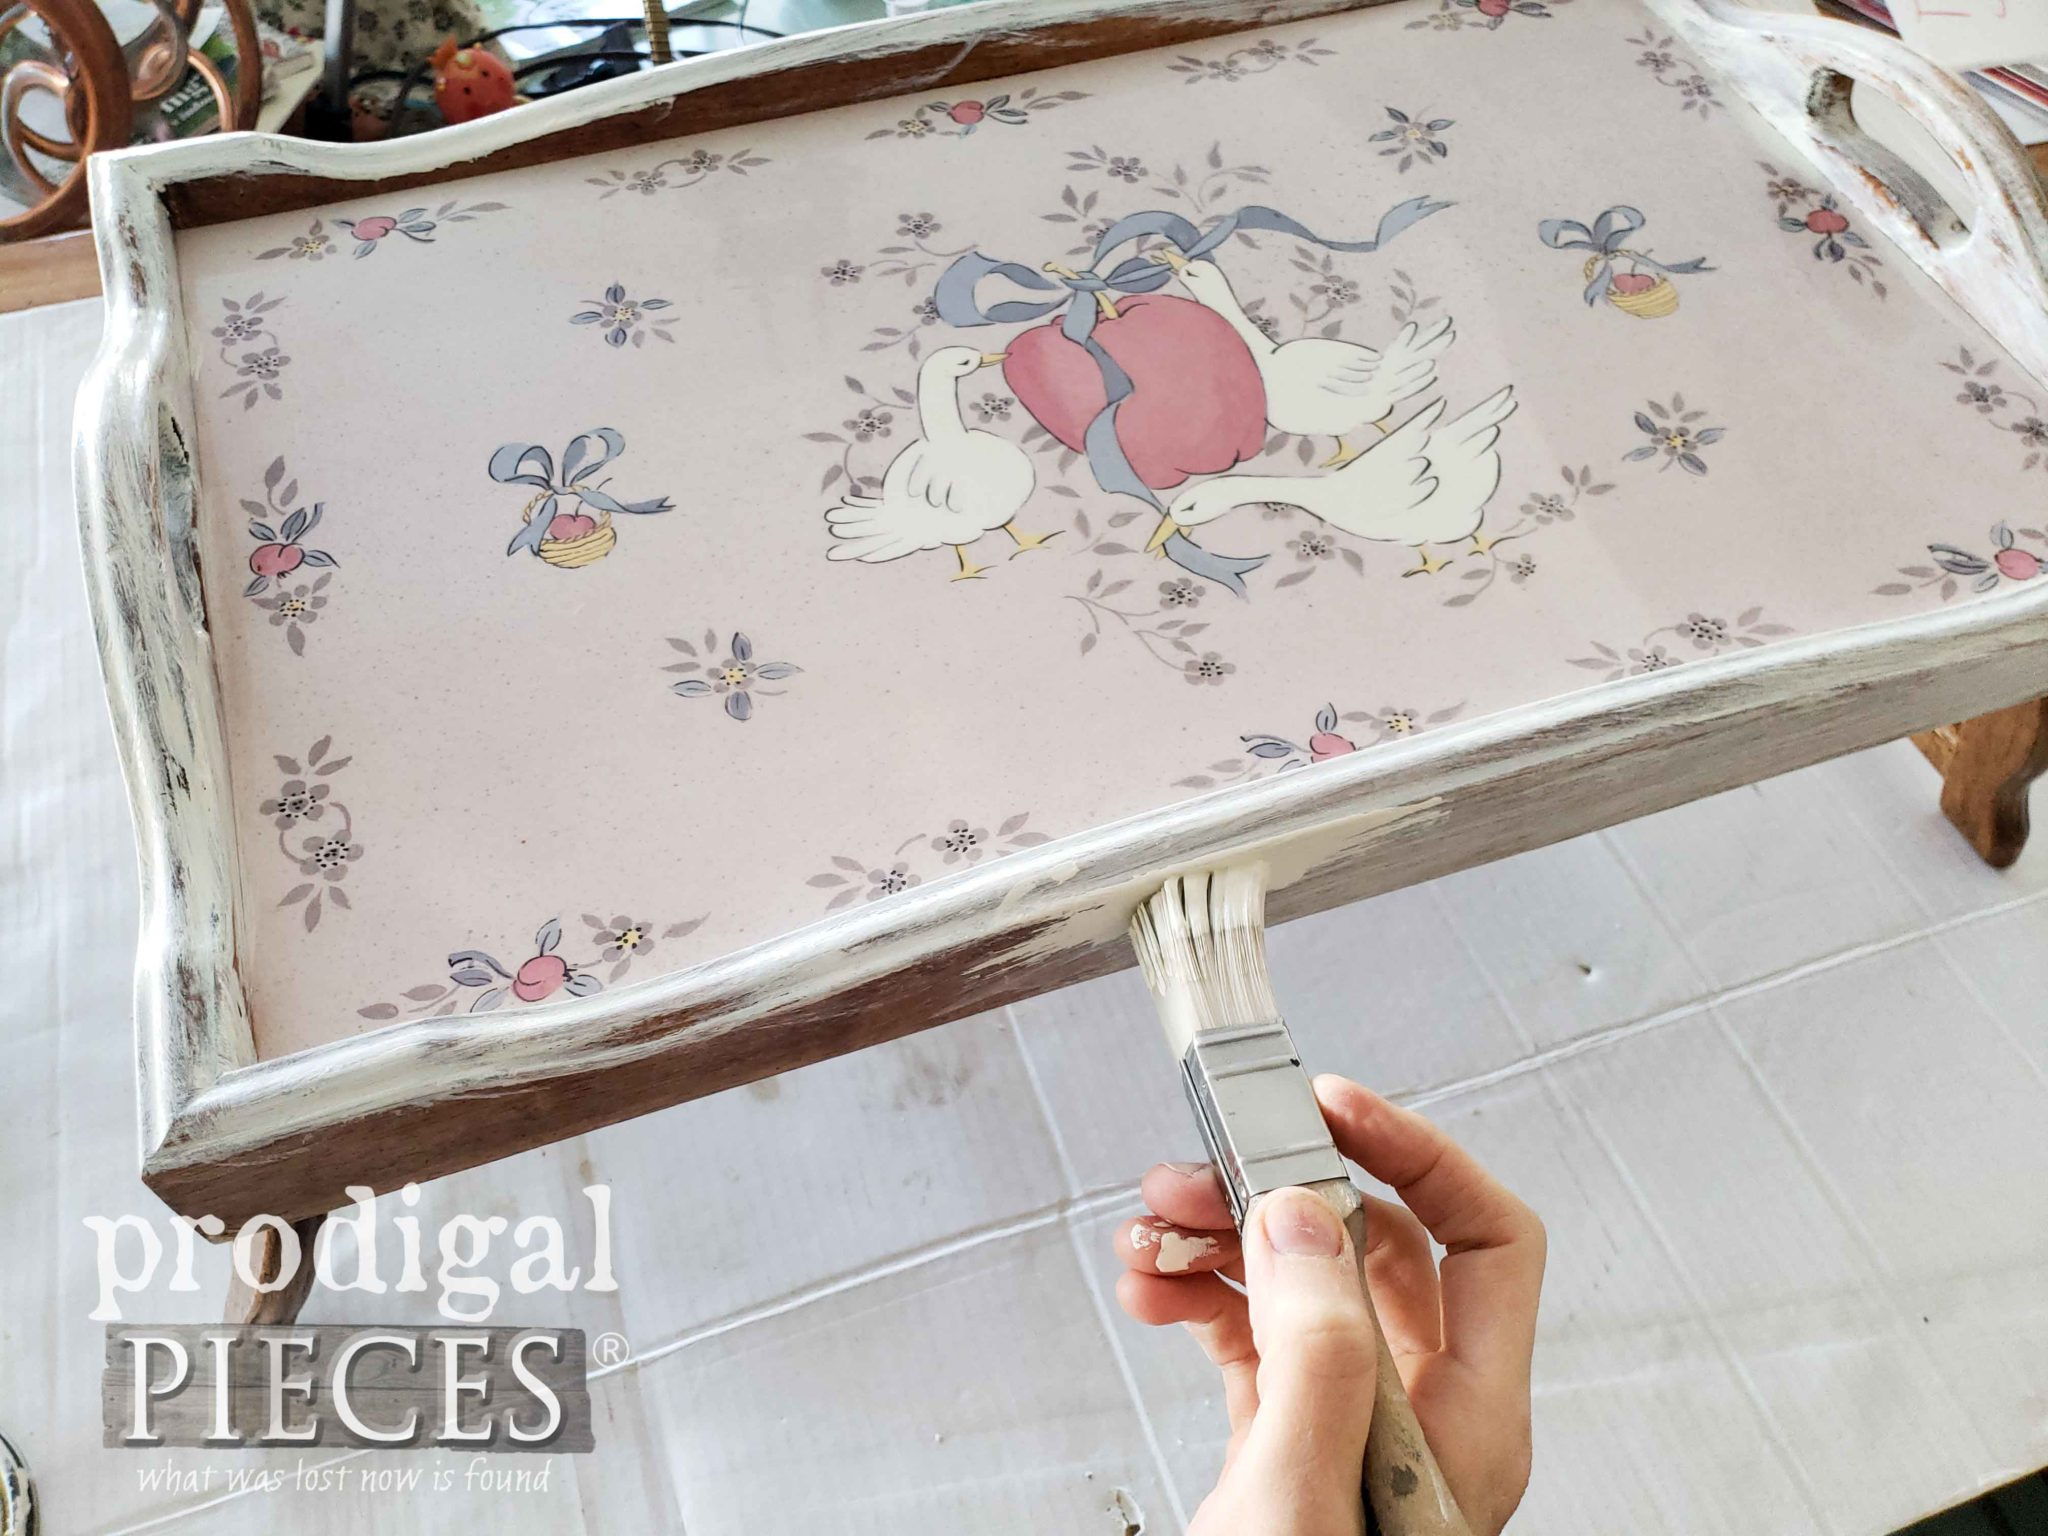 Painting Vintage Bed Tray with Zibra Square Brush | prodigalpieces.com